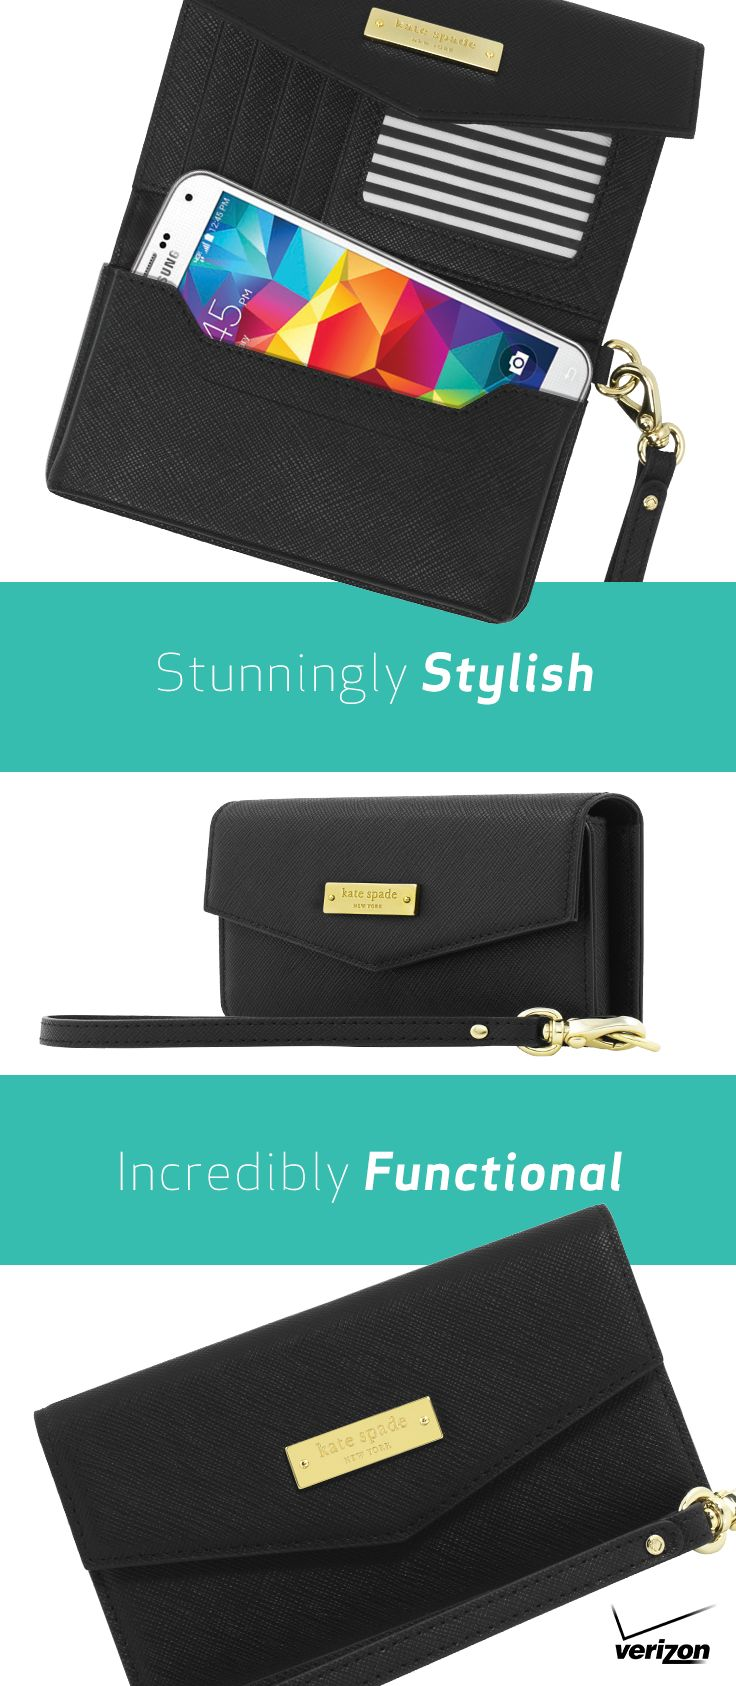 Let your smartphone ride in style and comfort with the large kate spade new york Saffiano Wristlet. This fashion-forward accessory is so much more than just a clutch or phone case. Designed with premium Saffiano vegan leather and gold details, this wristlet has dedicated spaces for your device, credit cards, cash and IDs, too! Fits any device up to 5.7 inches, and goes anywhere you do.